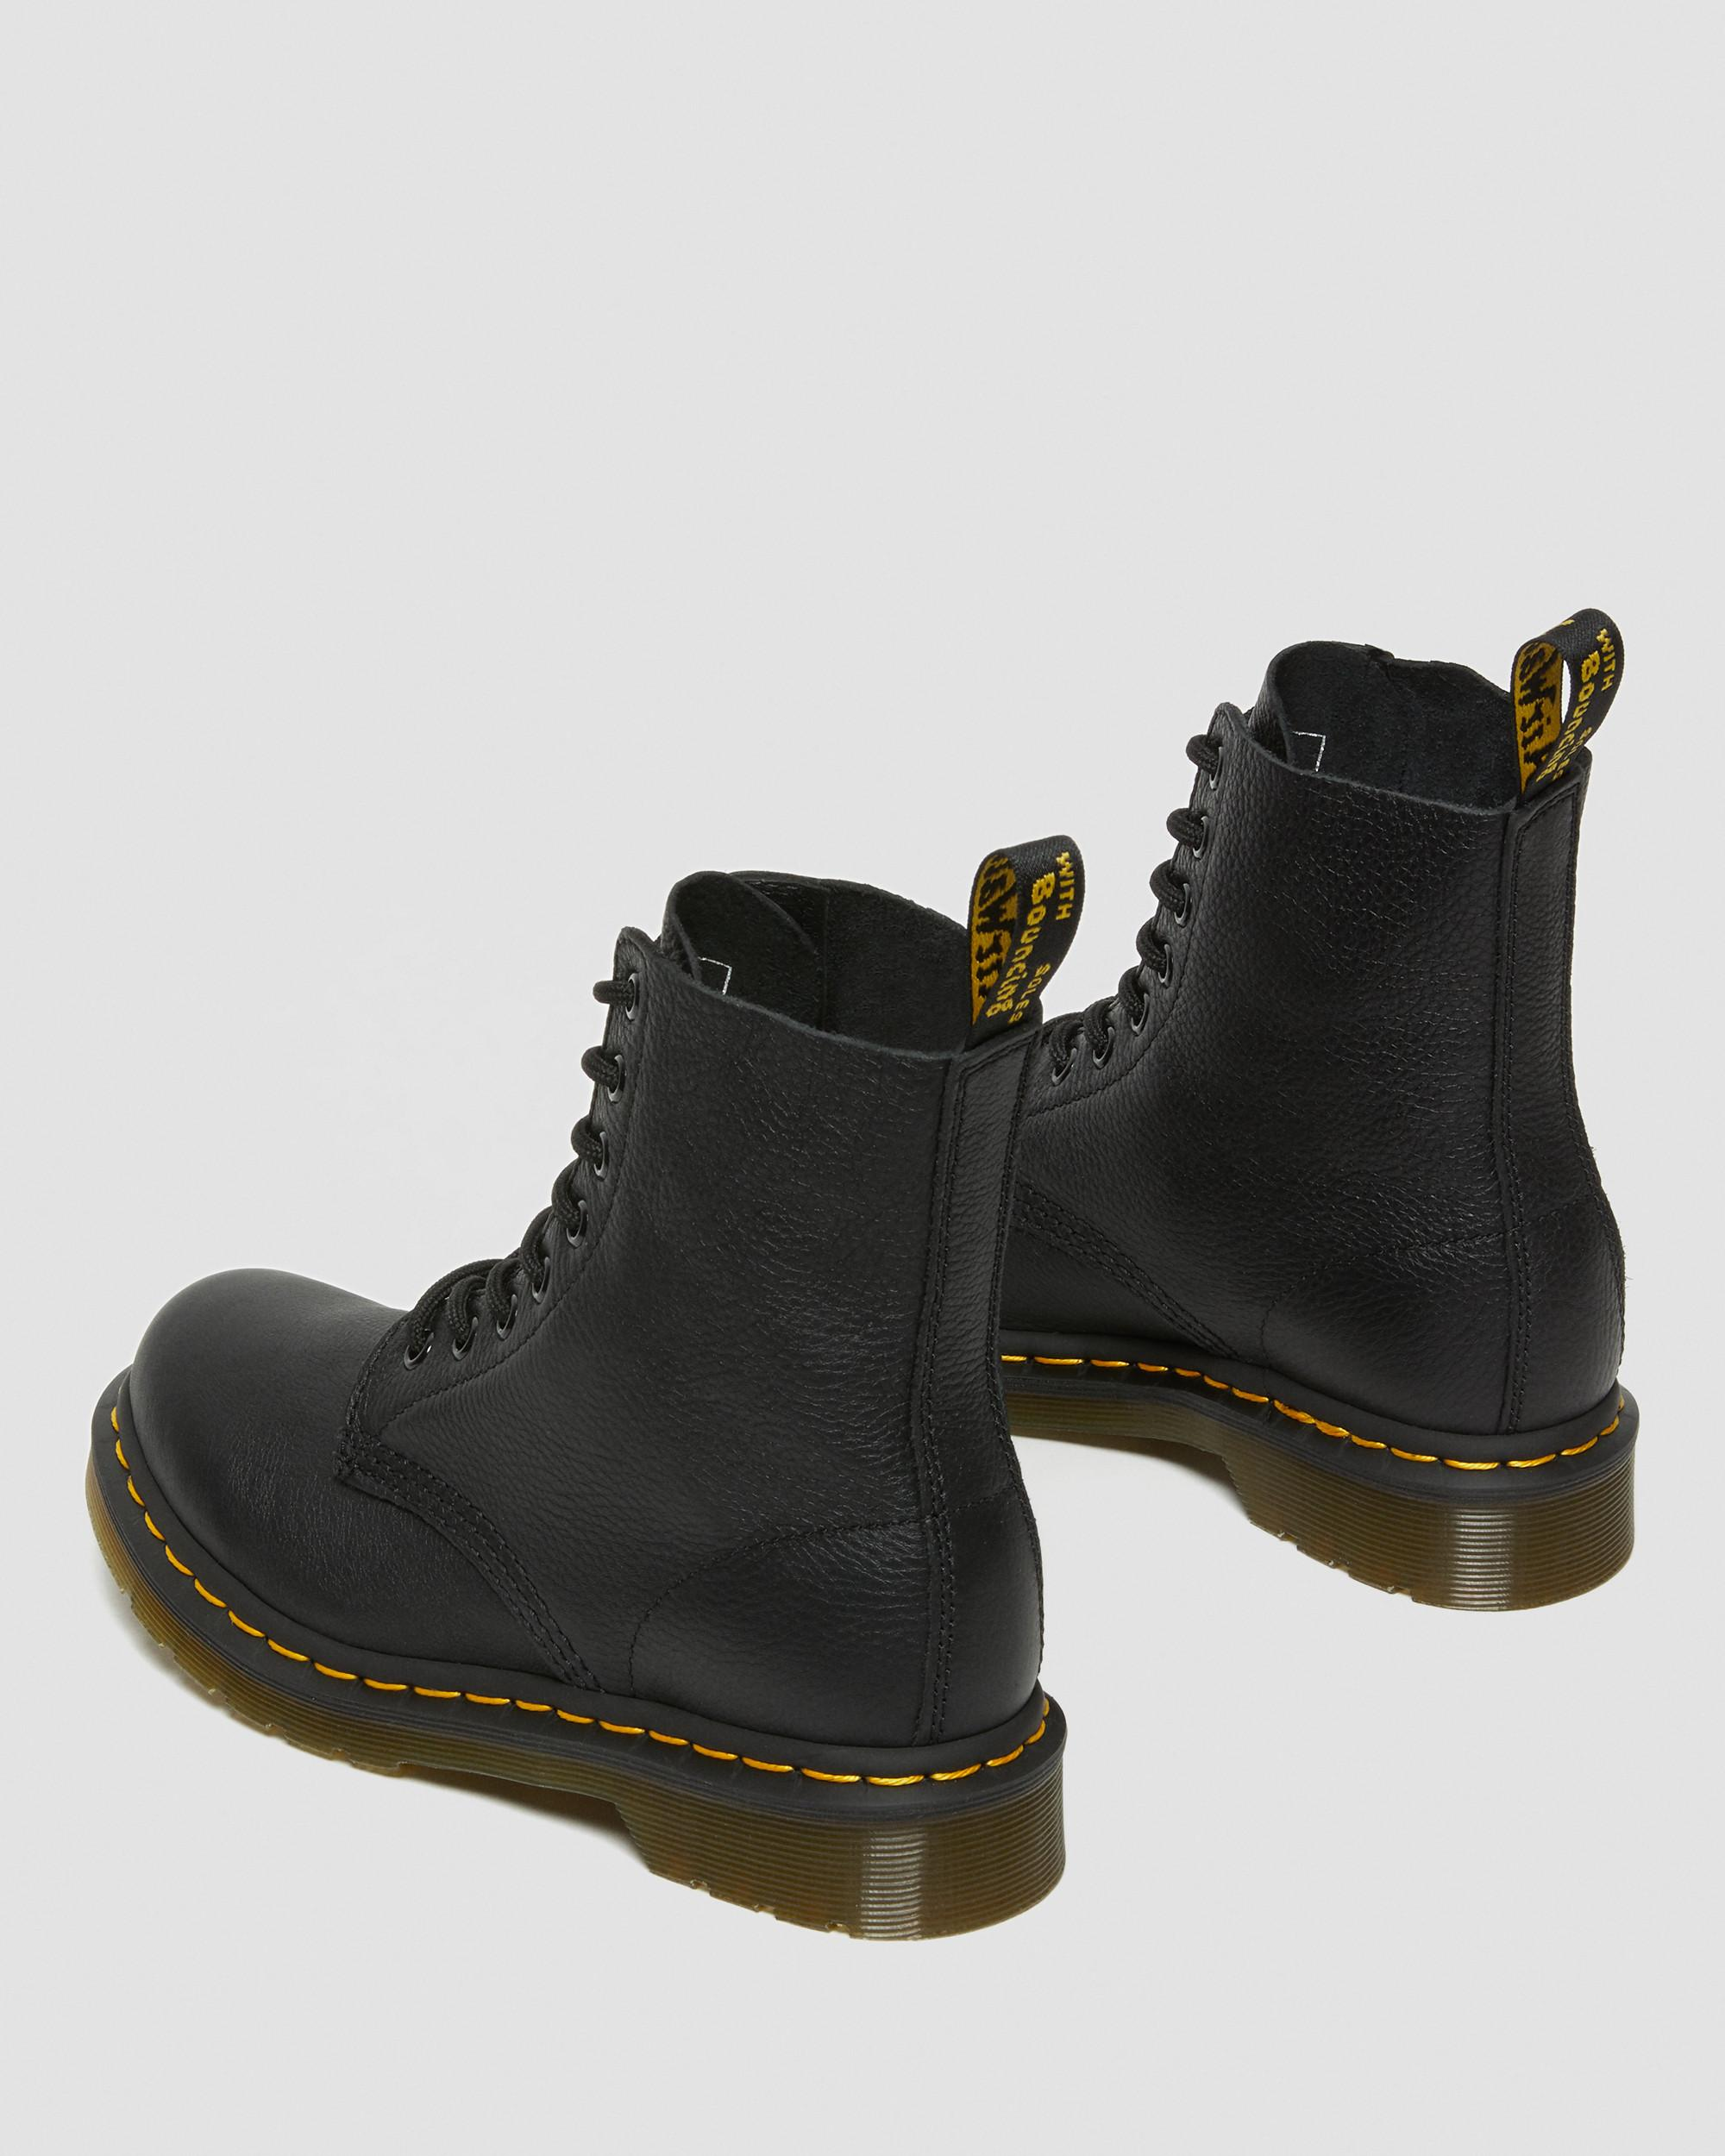 DR MARTENS 1460 WOMEN'S PASCAL VIRGINIA LEATHER BOOTS